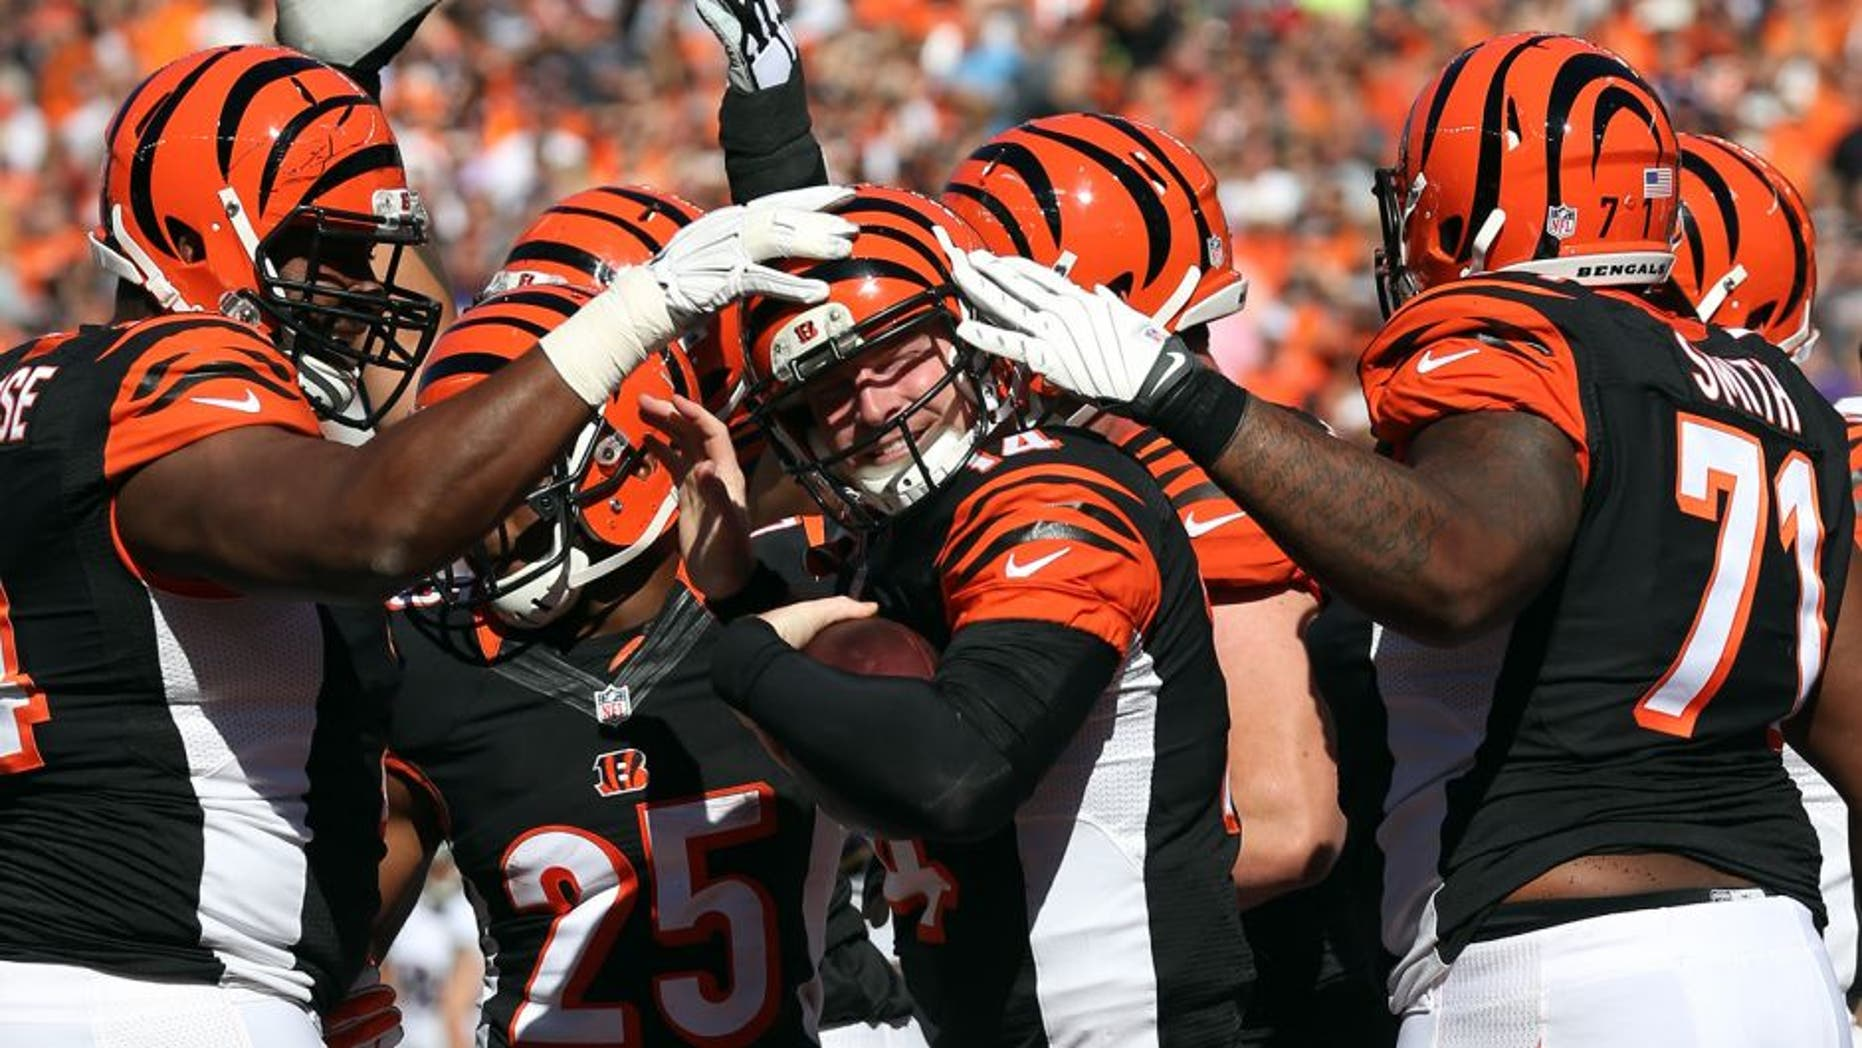 Cincinnati Bengals quarterback Andy Dalton, center, is congratulated by teammates Marshall Newhouse, left, and Andre Smith after scoring a touchdown against the Baltimore Ravens during the first half of an NFL football game in Cincinnati, Sunday, Oct. 26, 2014. (AP Photo/Michael Conroy)